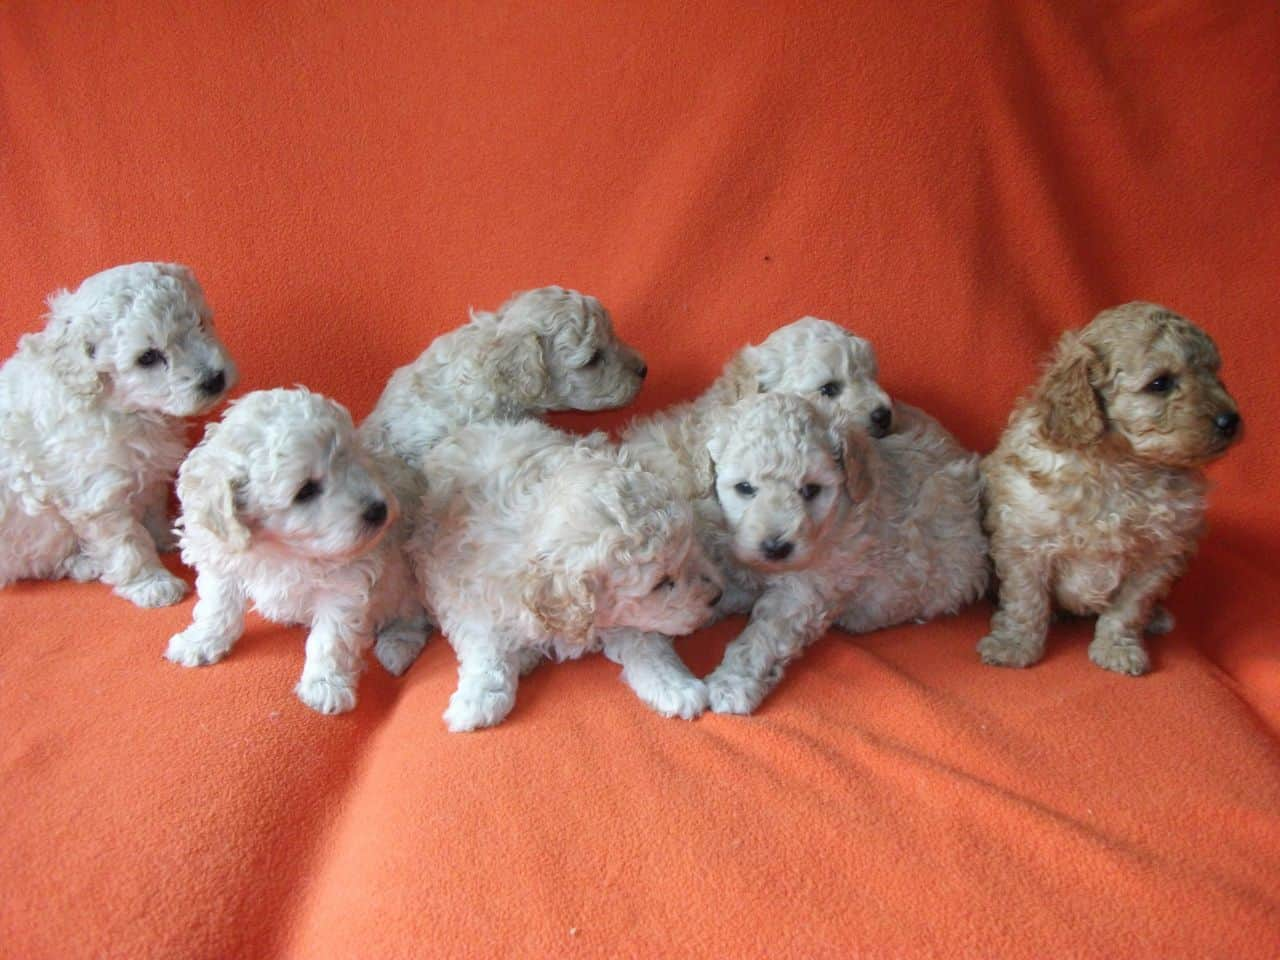 Poodles – small dog breed